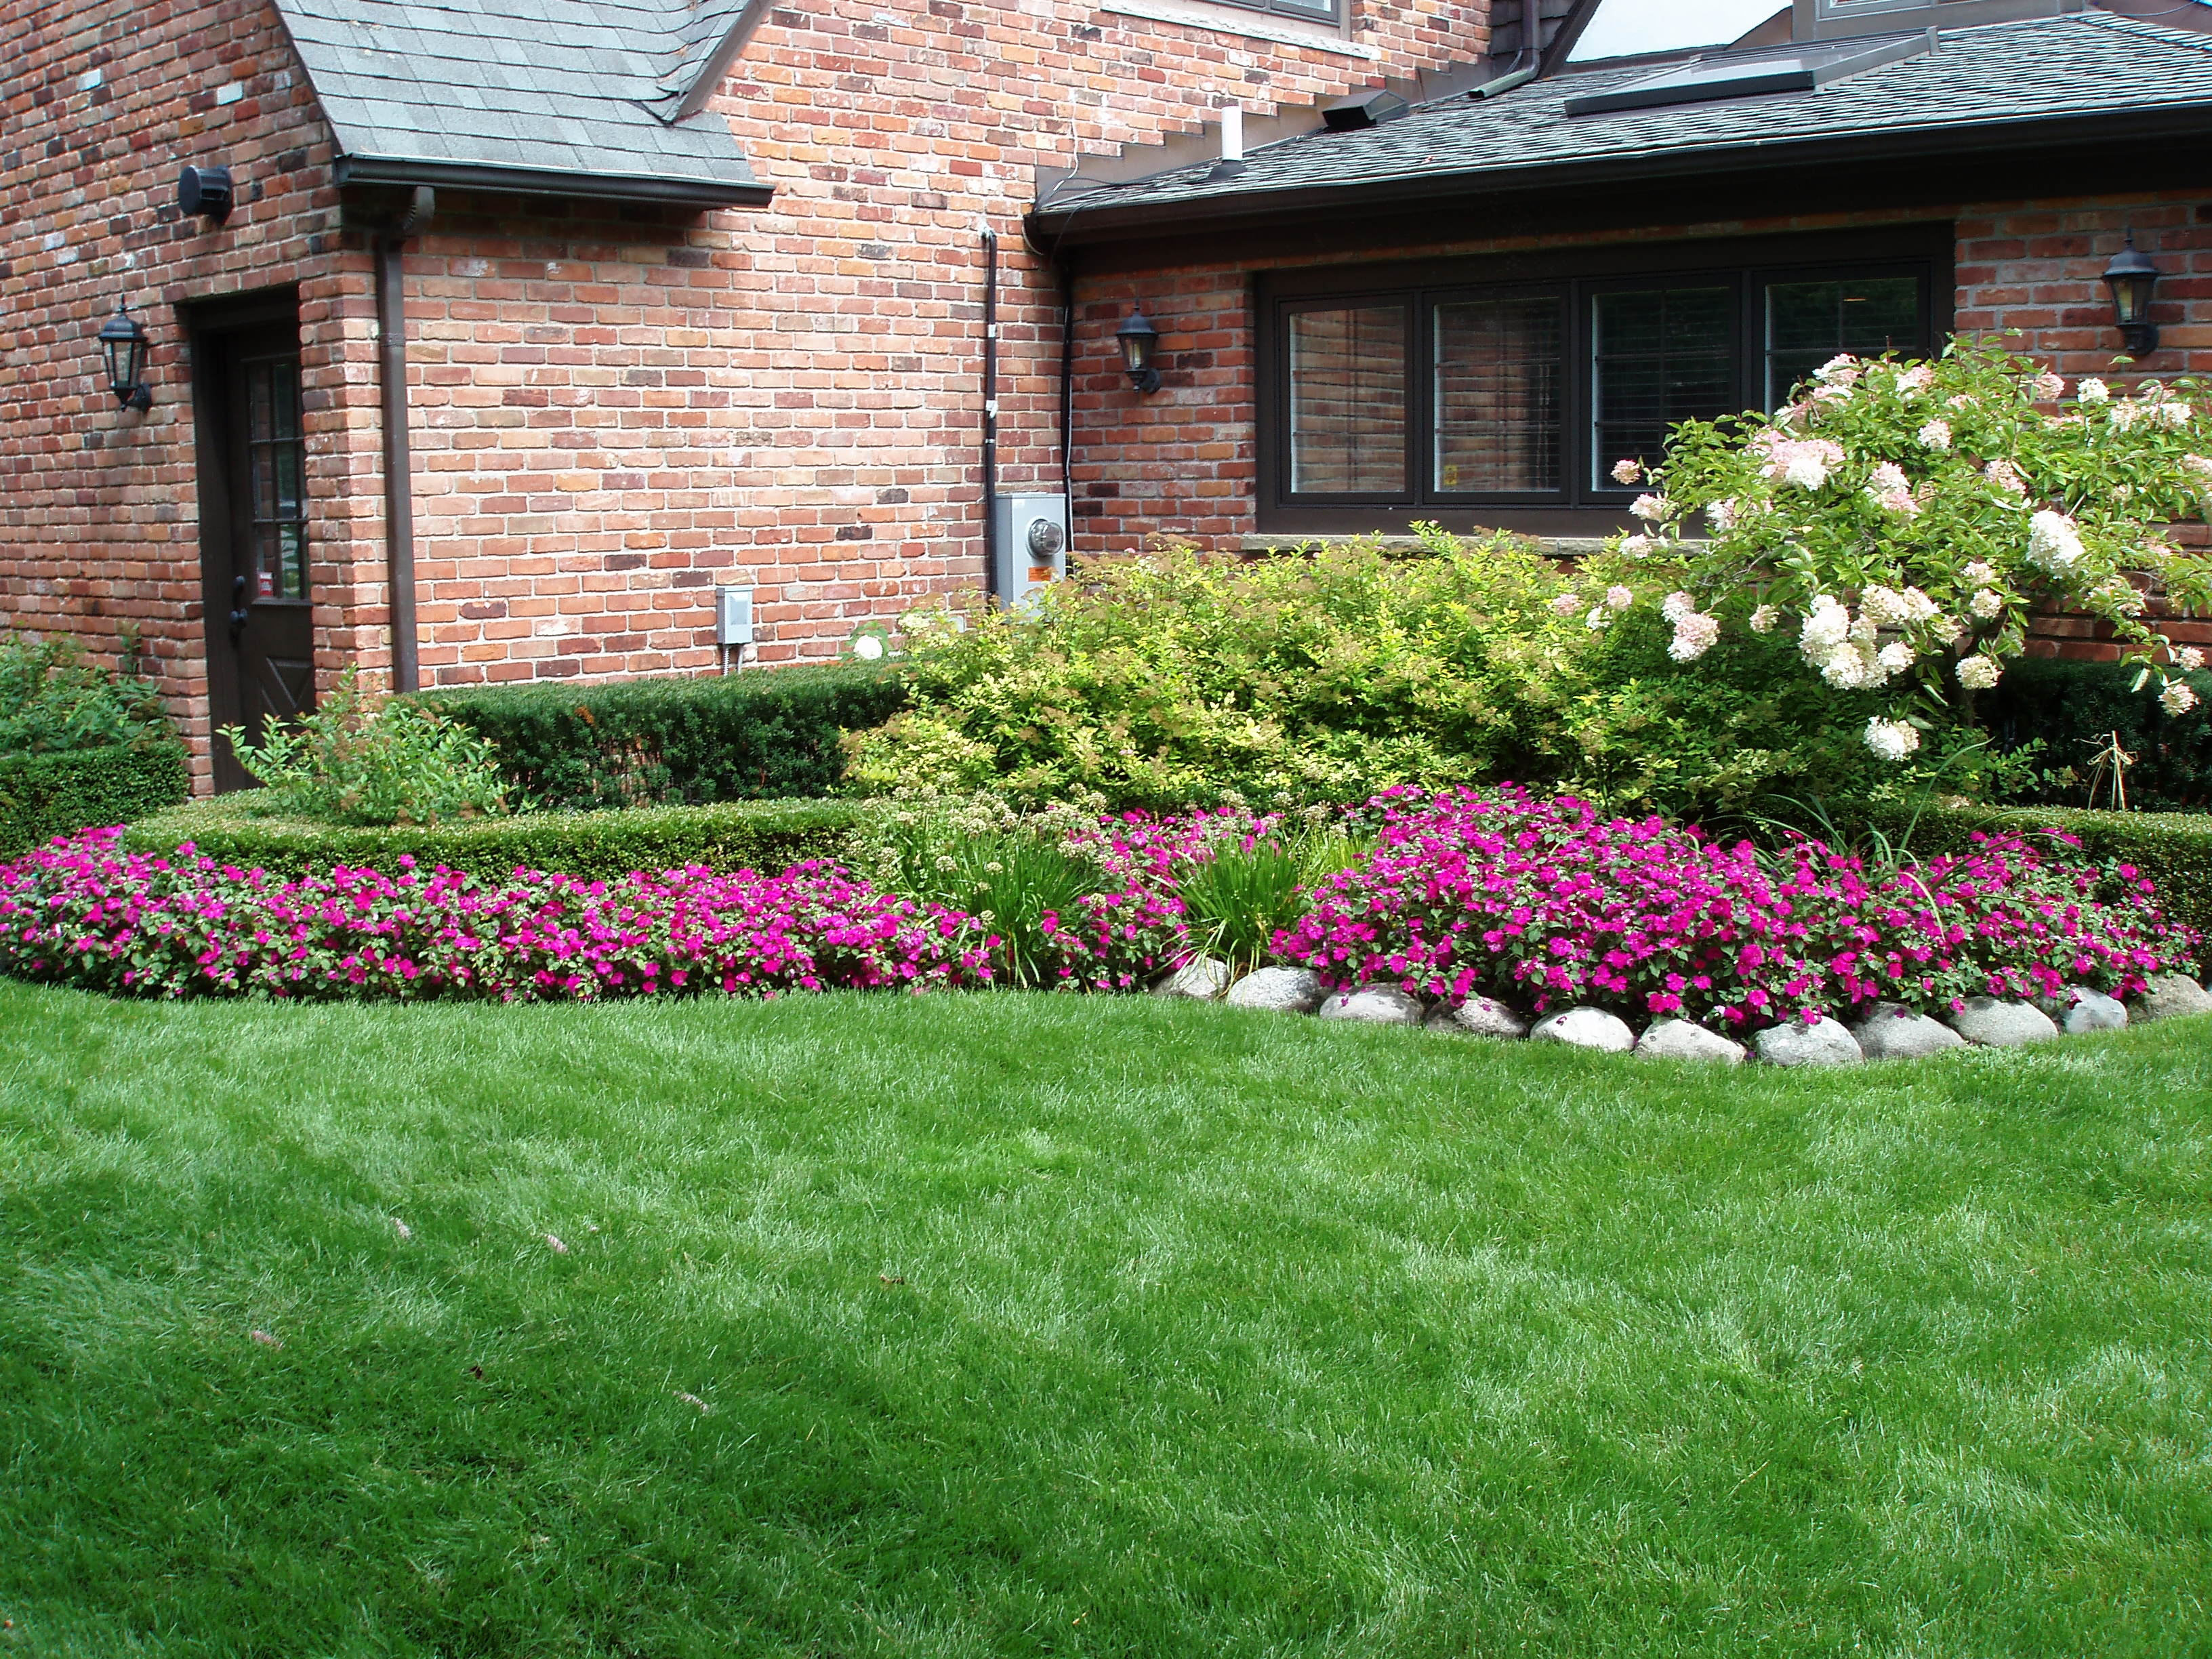 Perennials total lawn care inc full lawn maintenance for Front lawn garden design